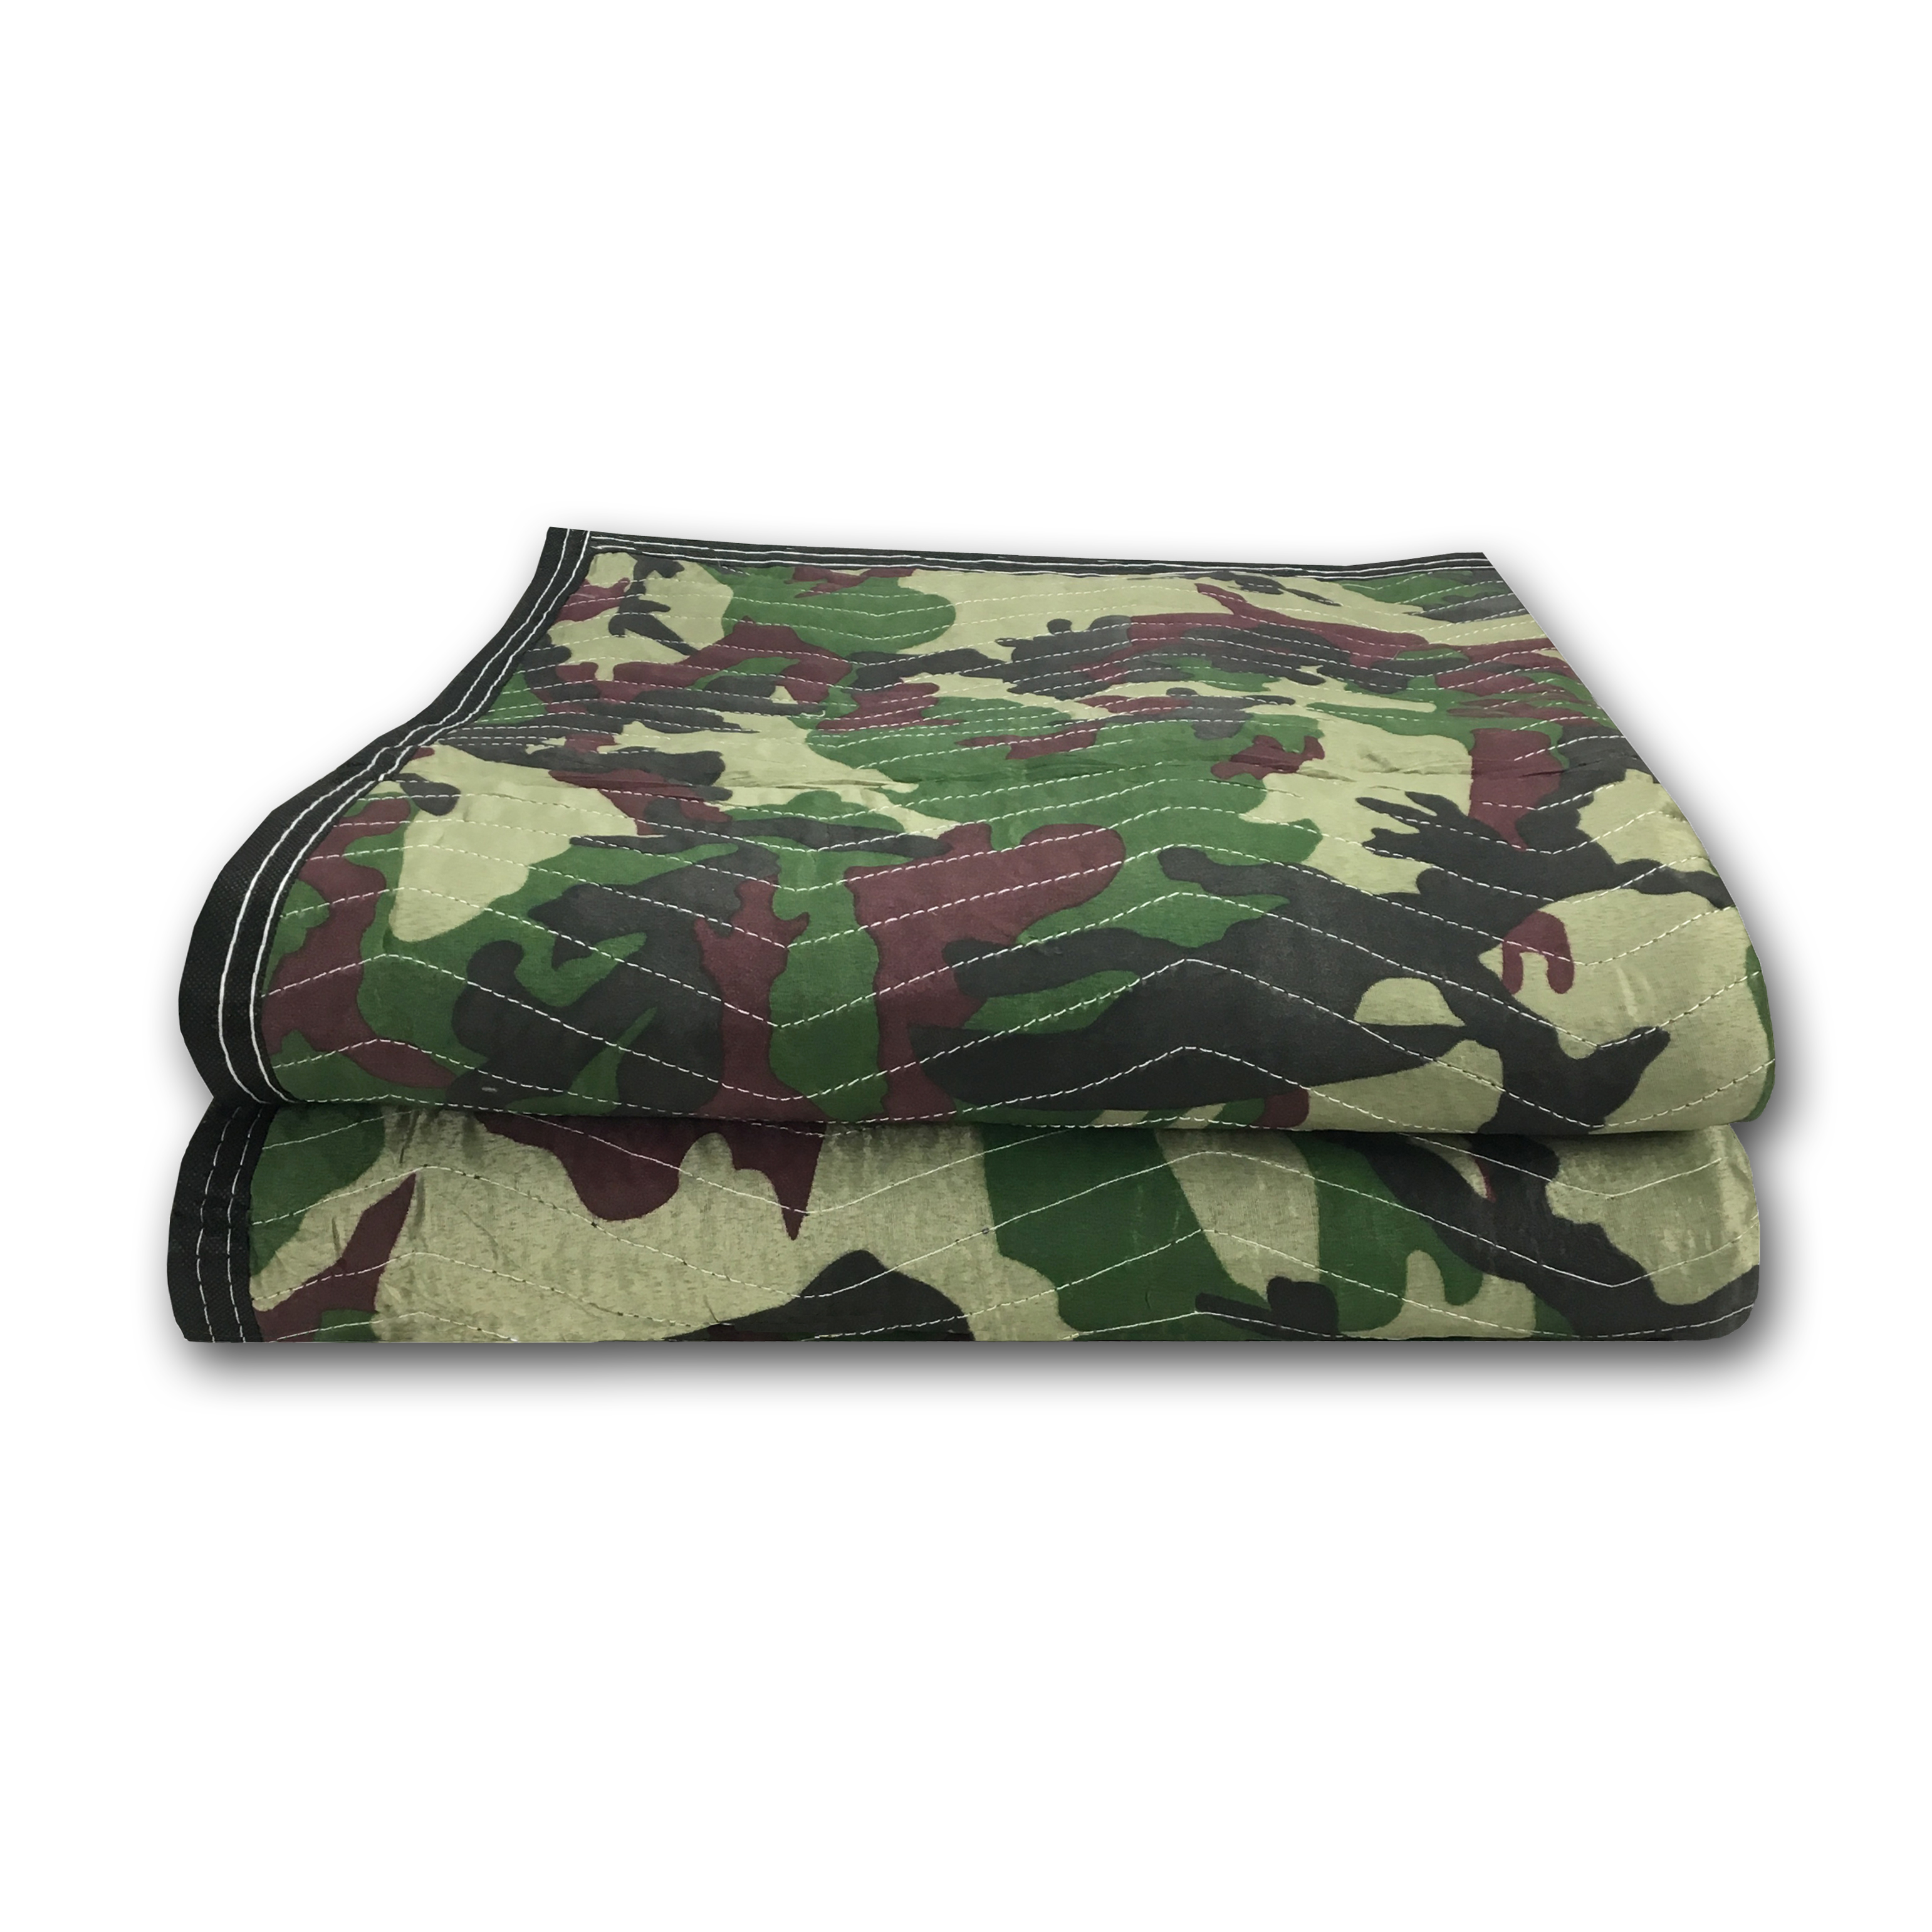 Uboxes Camo Moving Blankets, 72 x 80 in, 5.4lbs each, 2 Pack